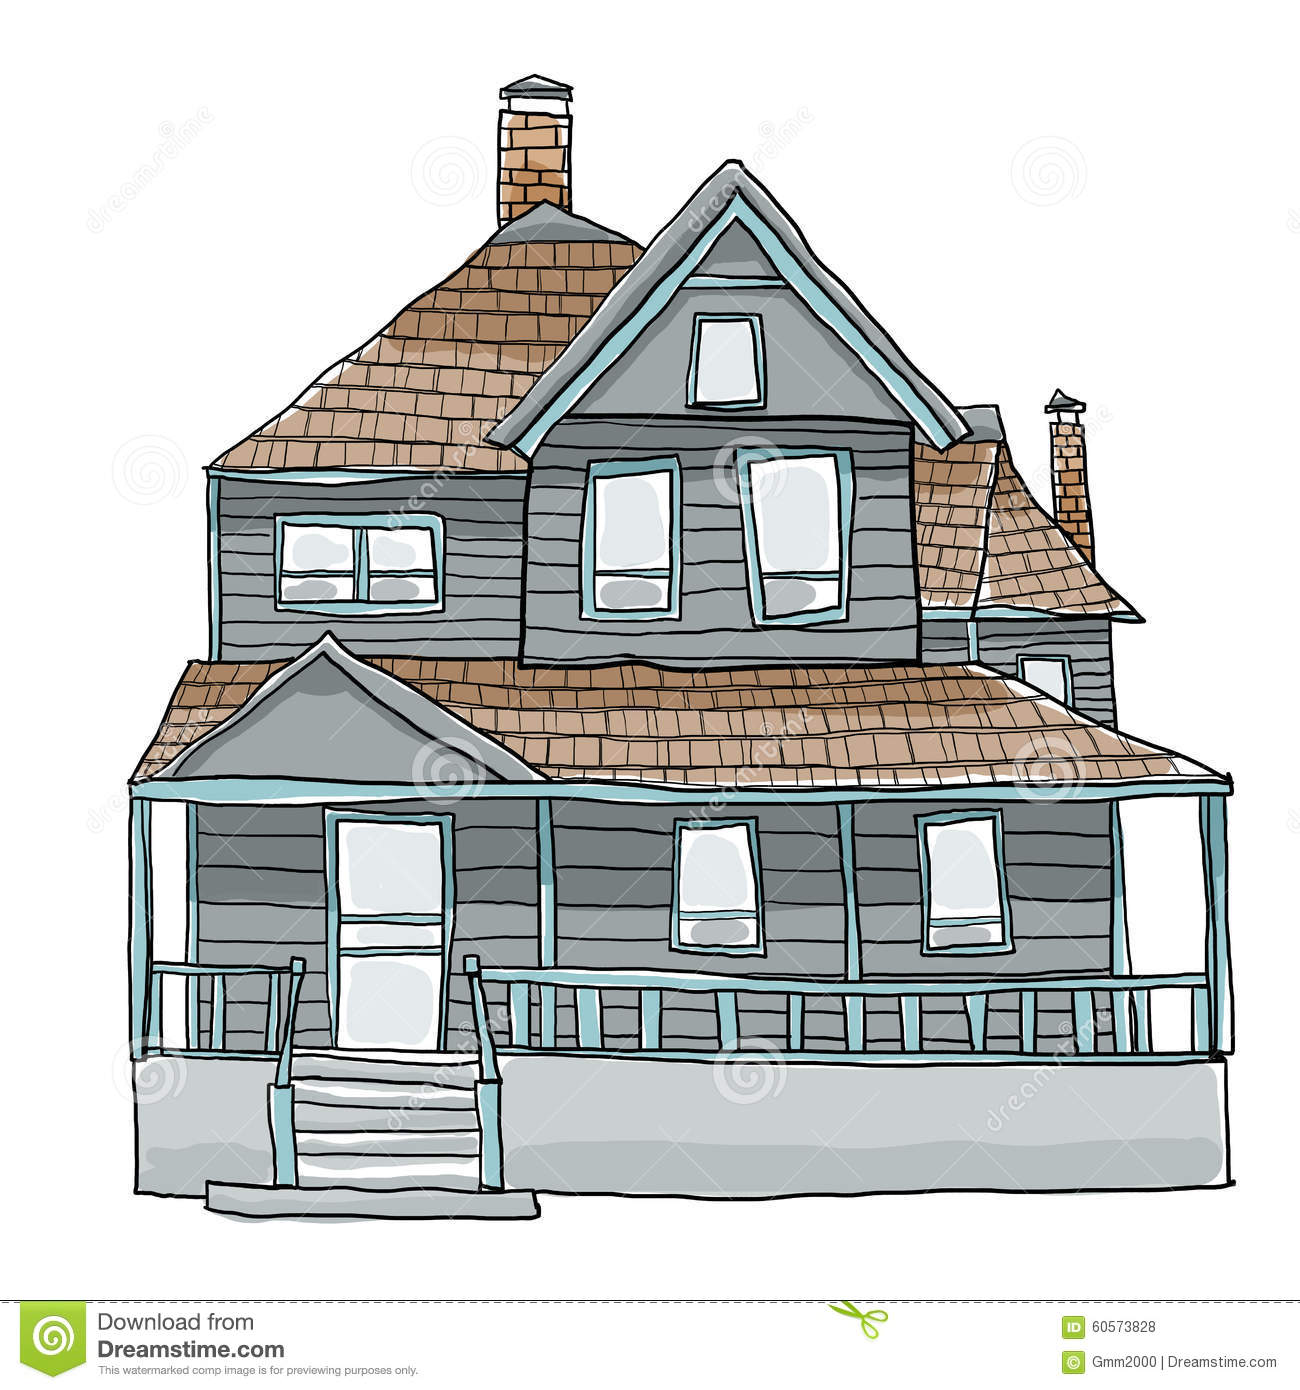 Vintage House Cute Art Cute Illustration Stock ...